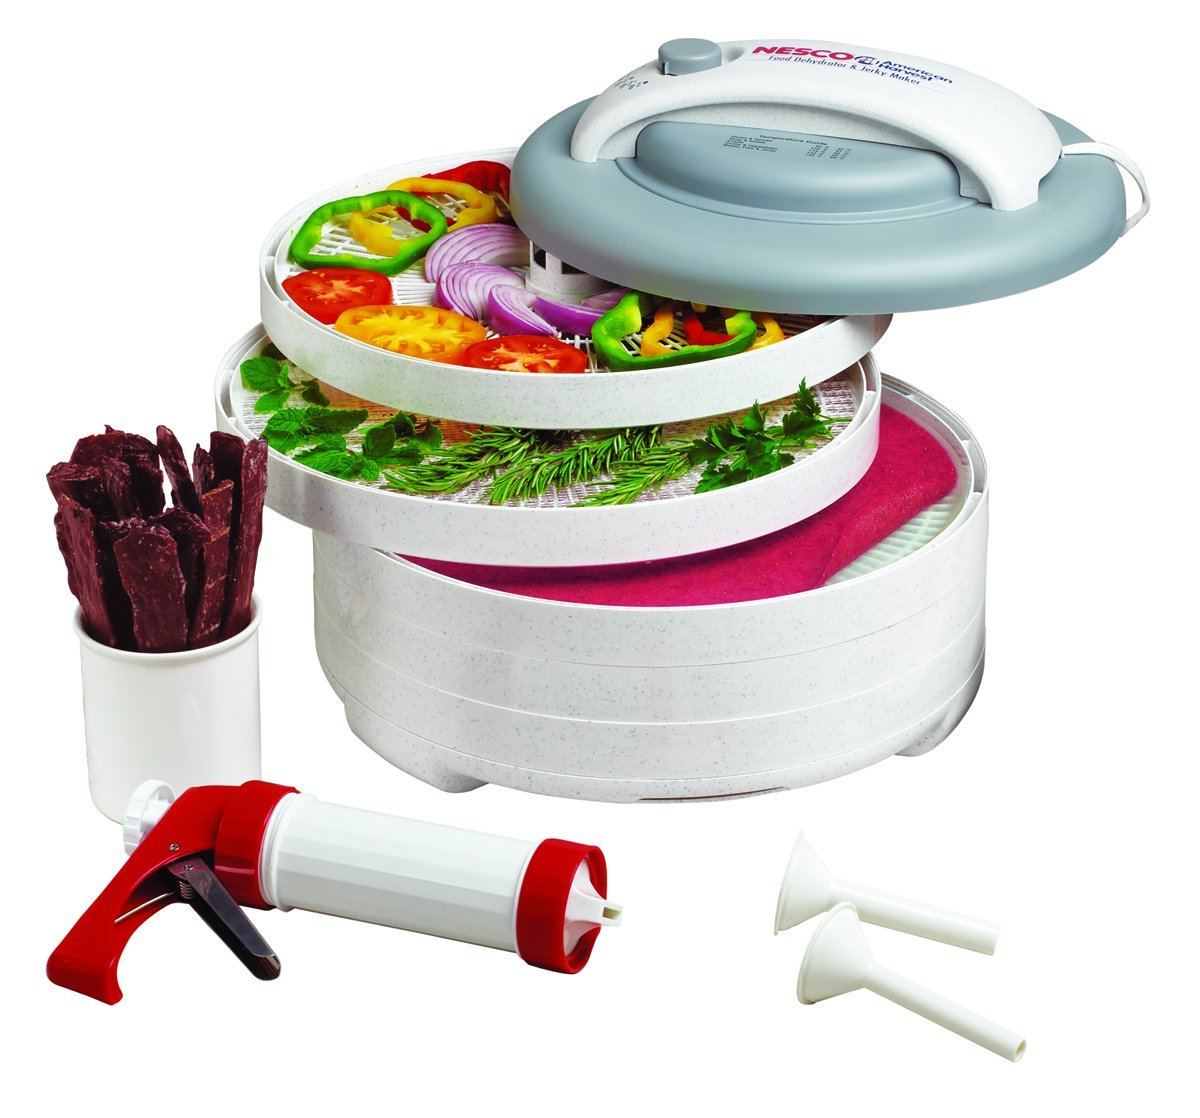 NESCO FD-61WHC, Snackmaster Express Food Dehydrator All-in-One Kit with